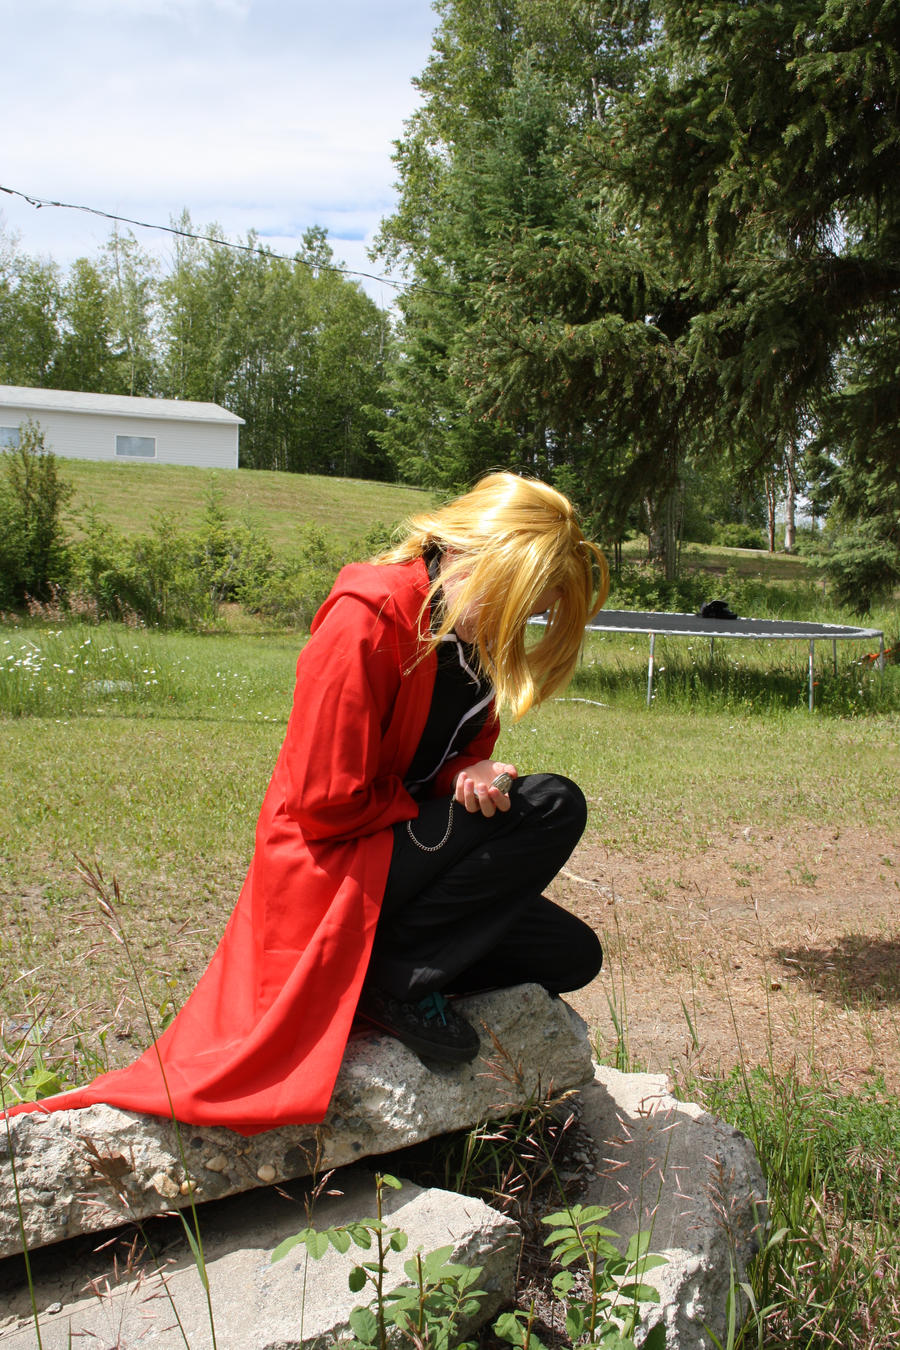 Enter Edward Elric by parodykids